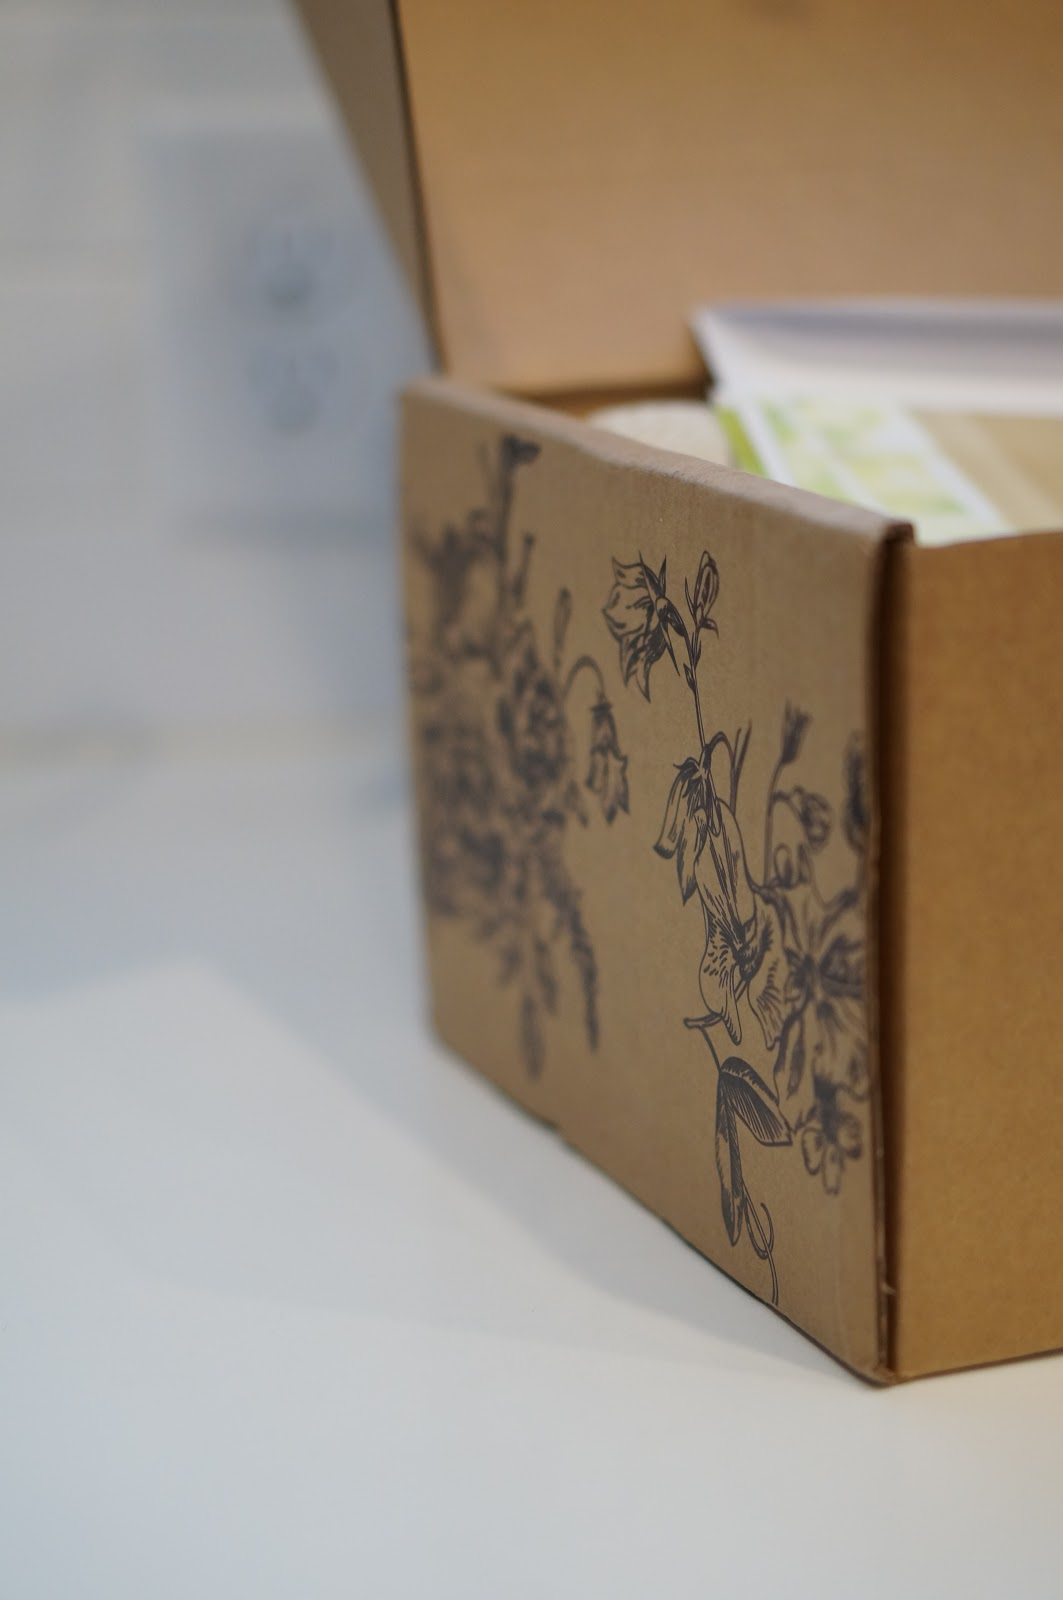 ENTERTAINING WITH BETH SUBSCRIPTION BOX by popular North Carolina lifestyle blogger Rebecca Lately